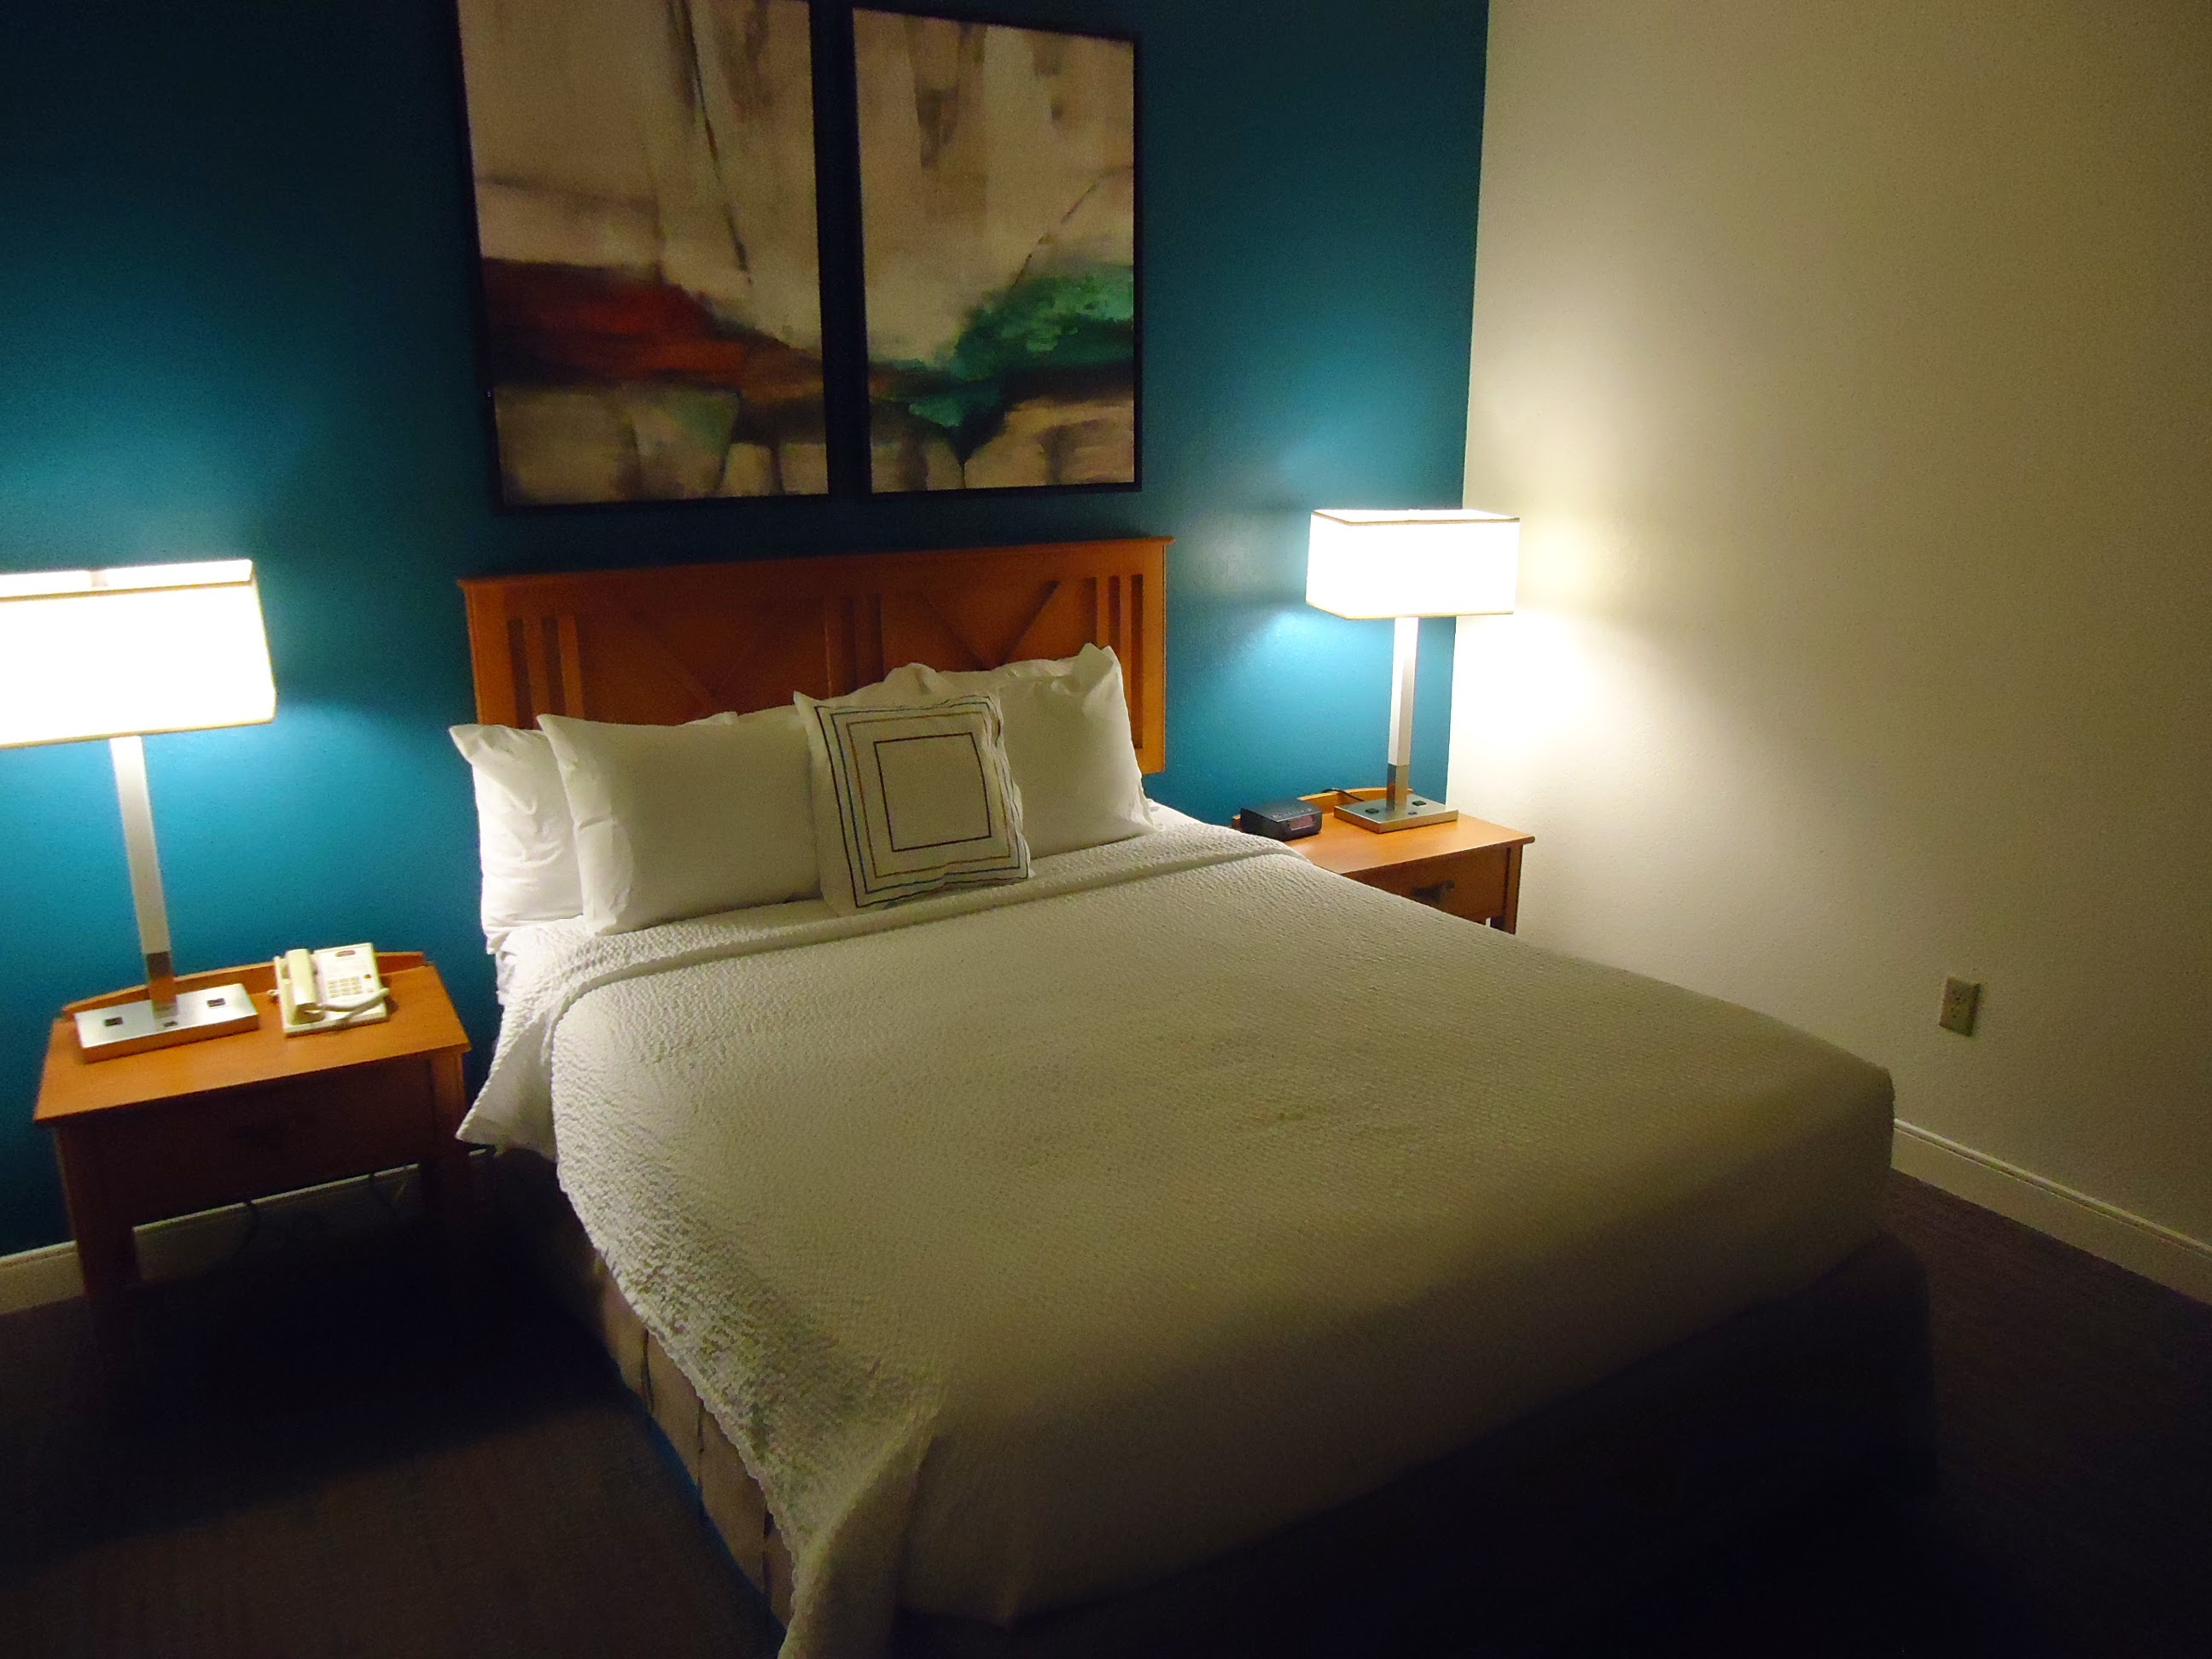 hor vancouver parq mattress guest hotel clsc guestroom marriott jw canada hotels luxury travel room yvrjw